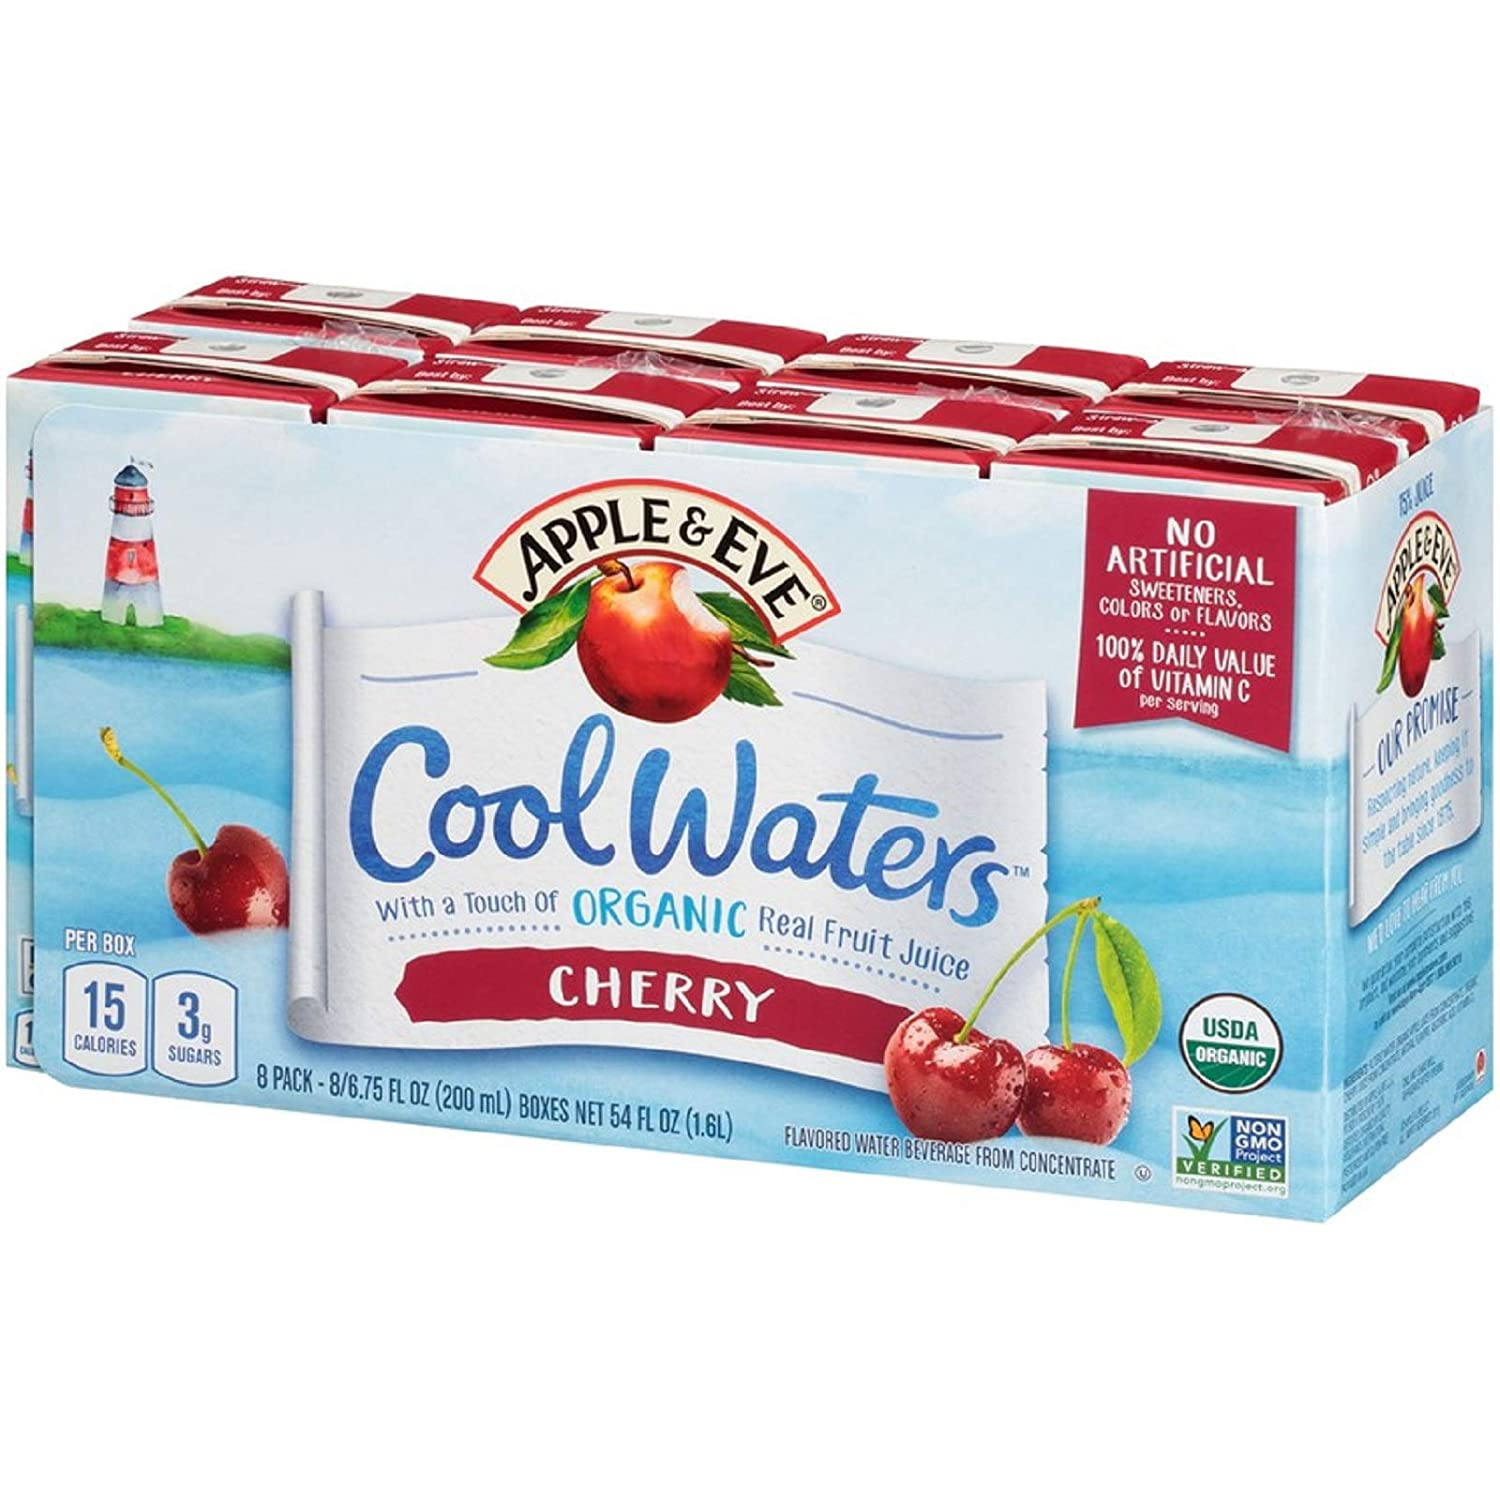 Apple & Eve Cool Waters Juice, Cherry, 6.75 Fluid Ounce, 8 Count